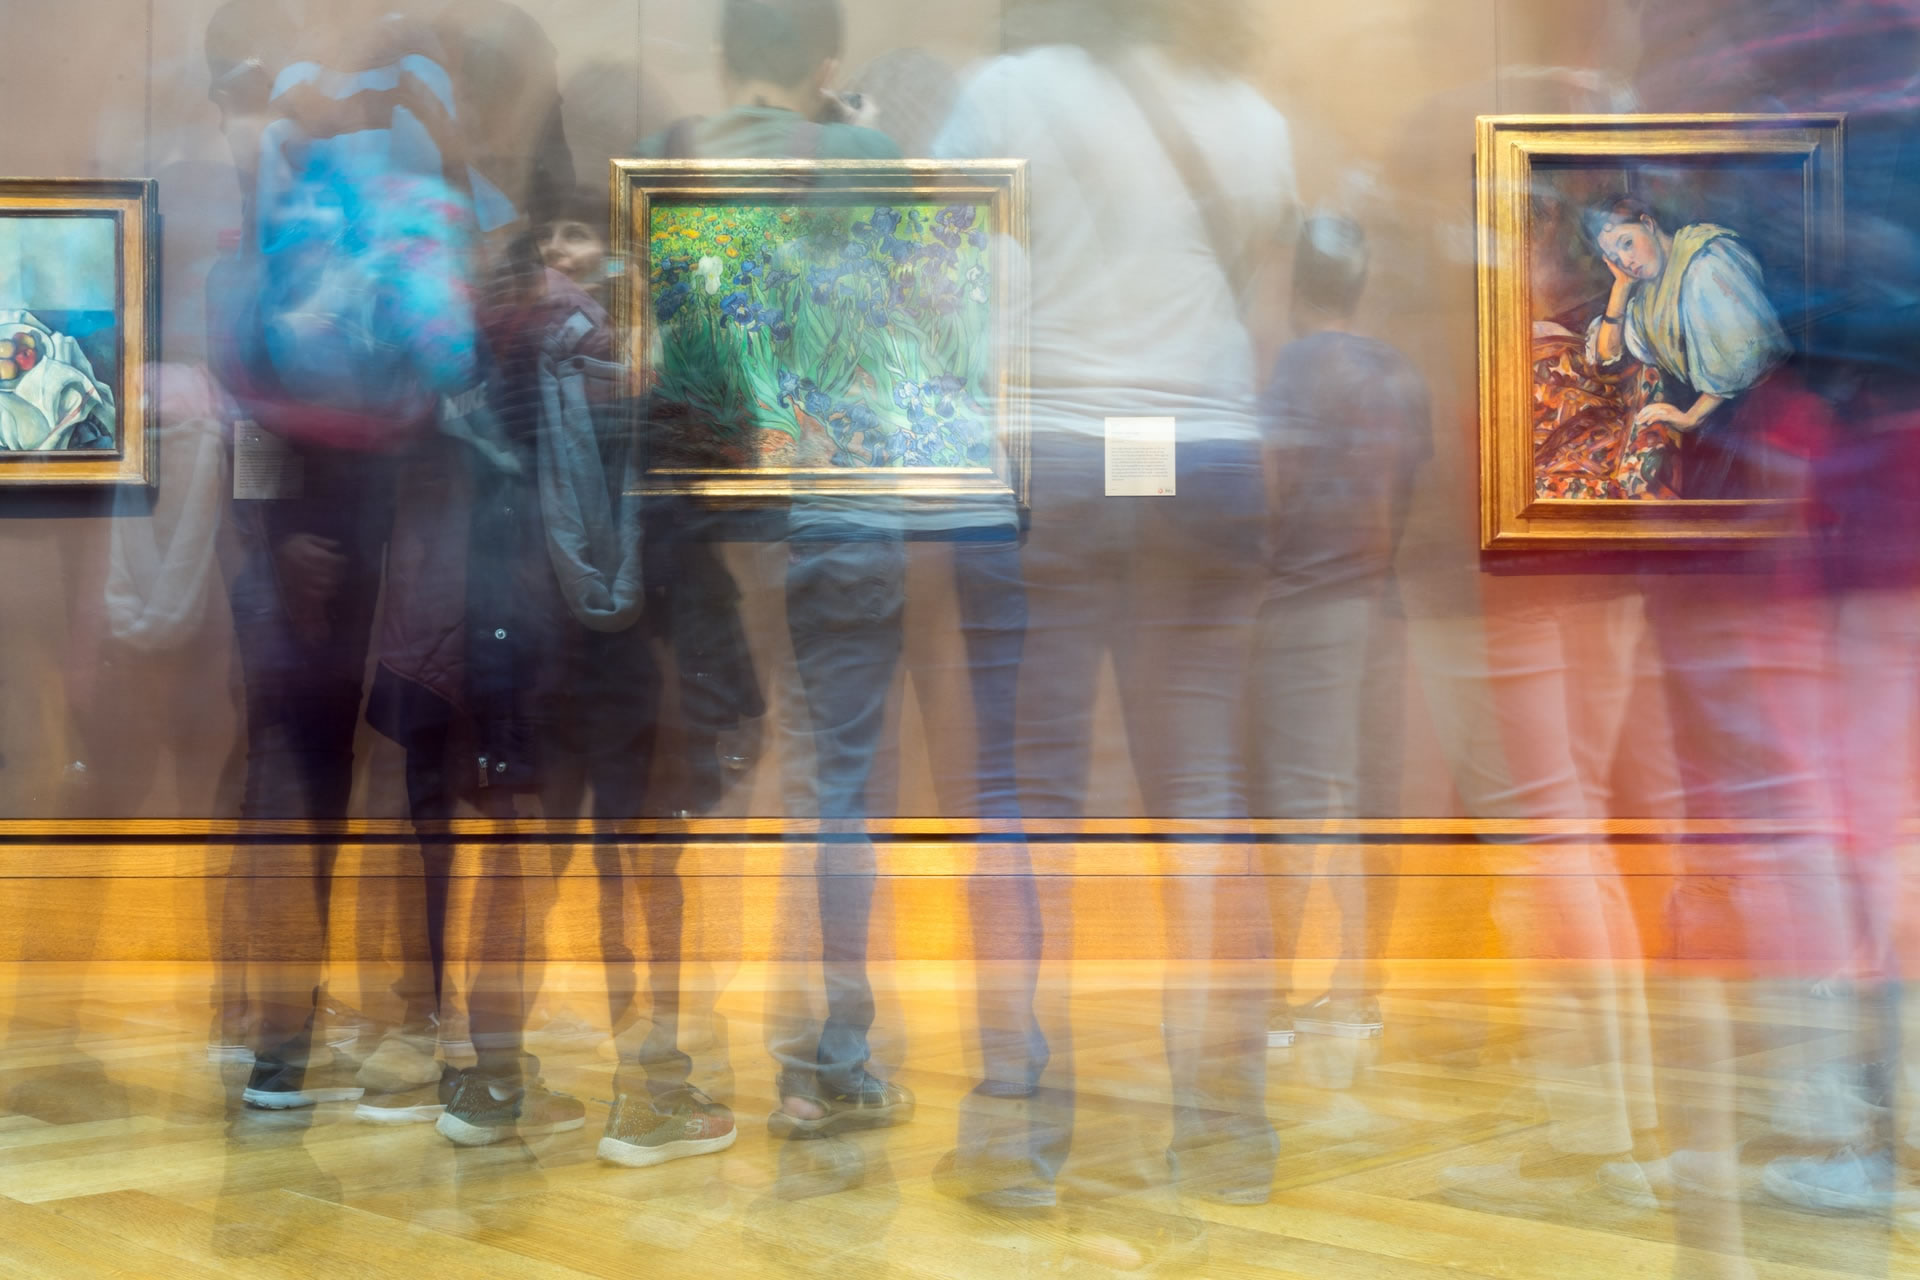 Paintings in an art gallery, photographed using a long exposure to show the ghostly movements of patrons.